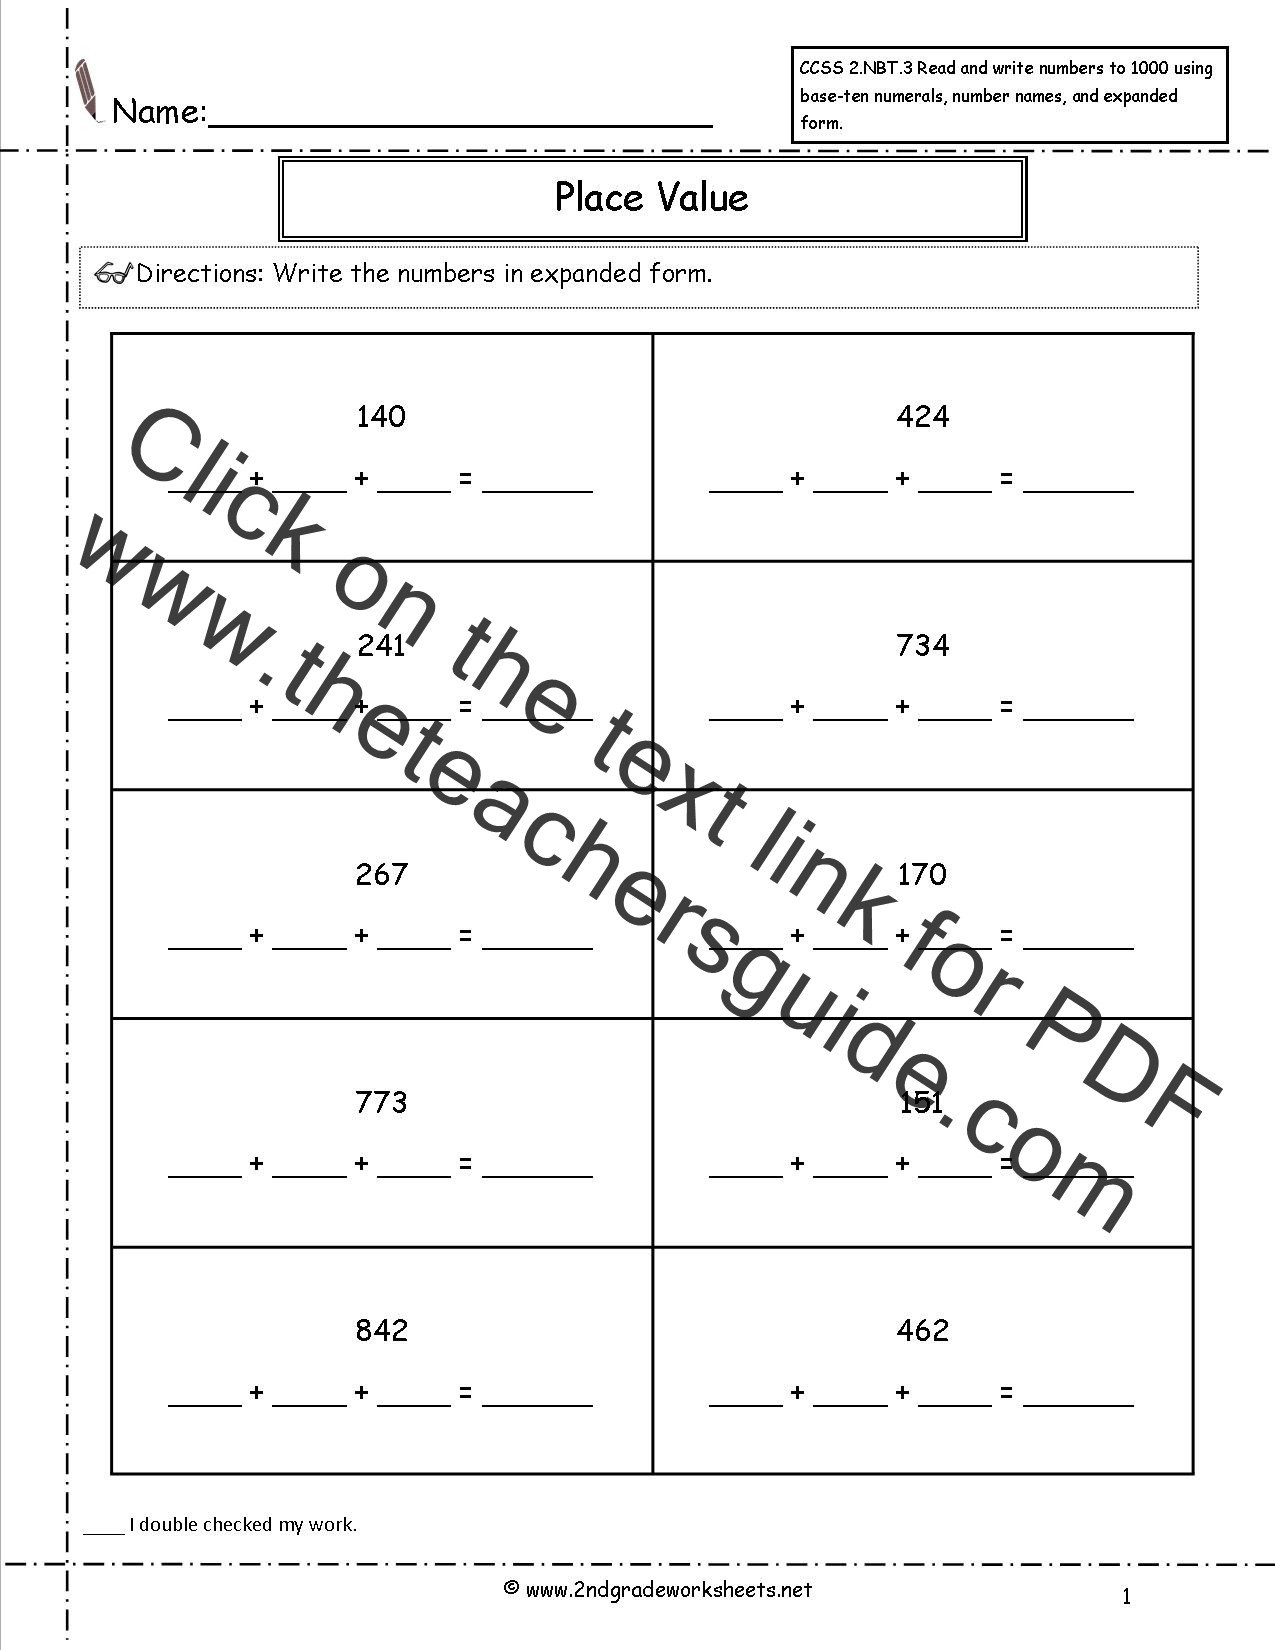 Place Value Worksheet 3rd Grade 2nd Grade Math Expanded form Worksheets